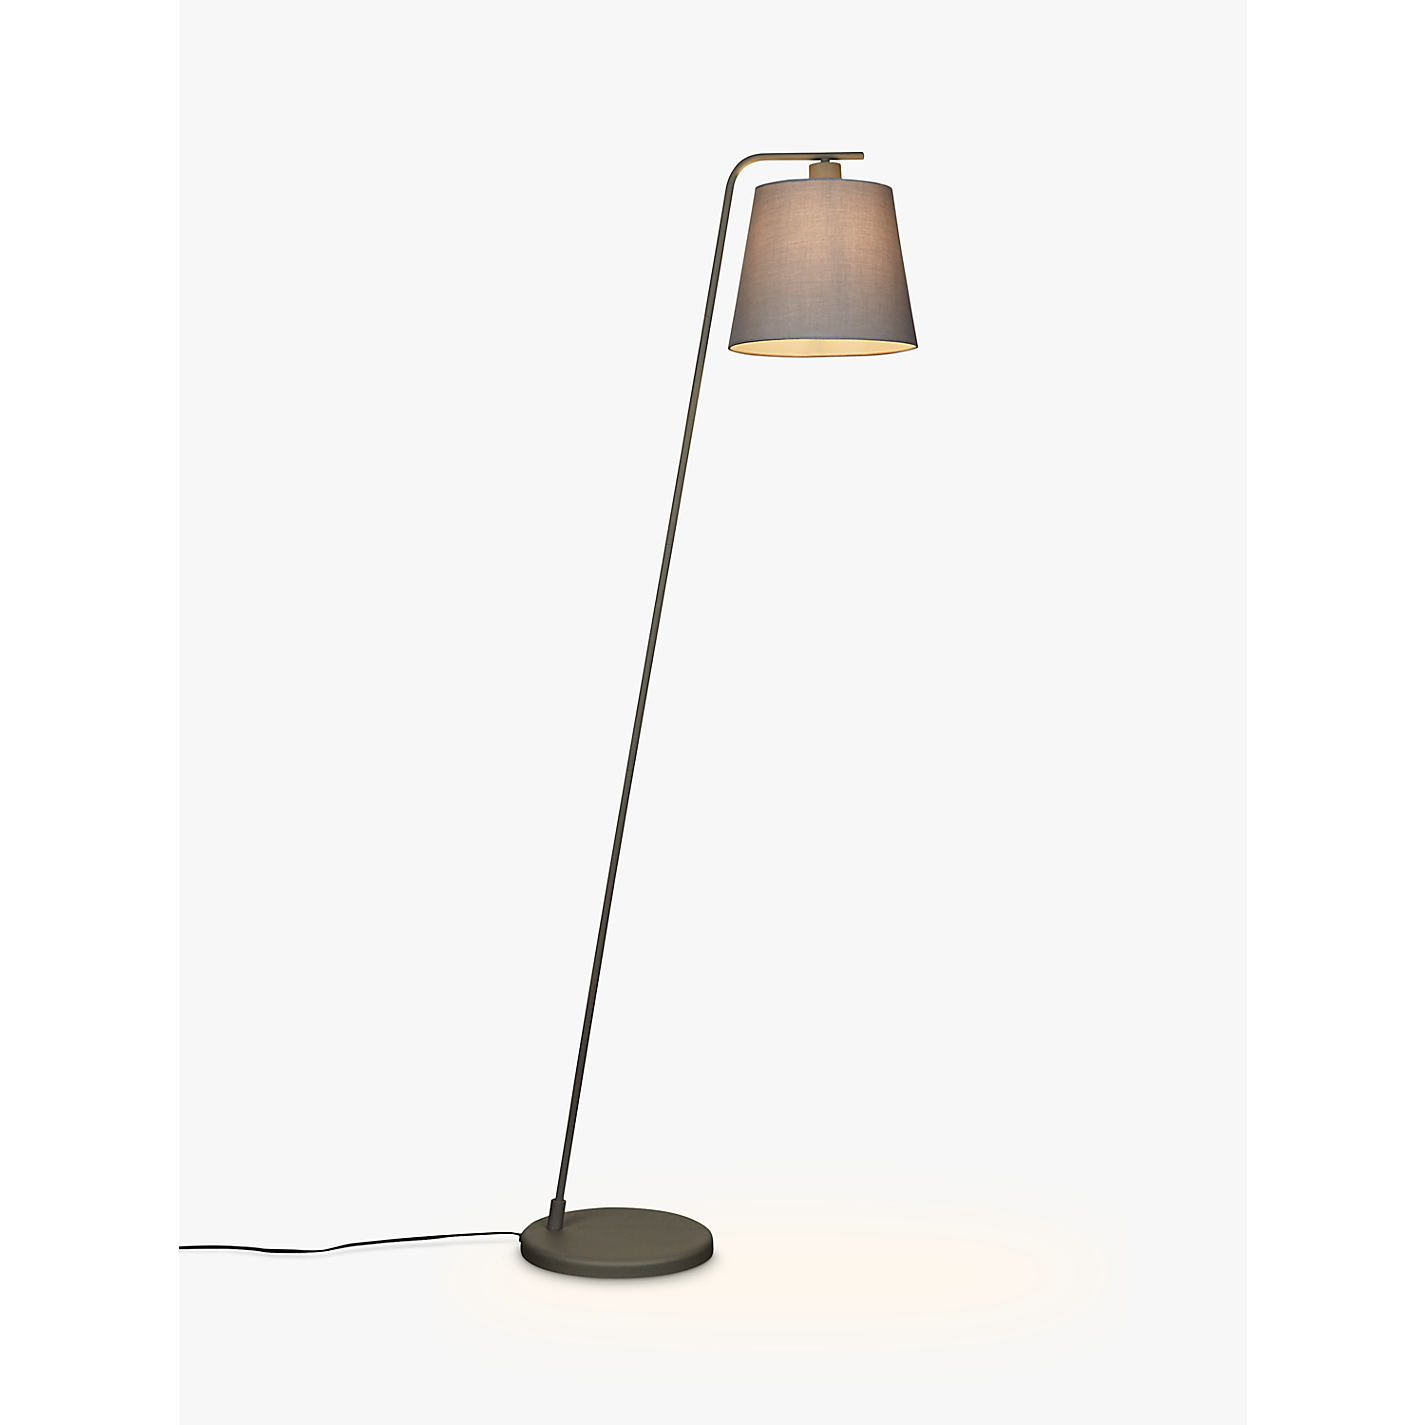 Floor lamps furniture lights john lewis buy house by john lewis harry floor lamp grey online at johnlewis aloadofball Images